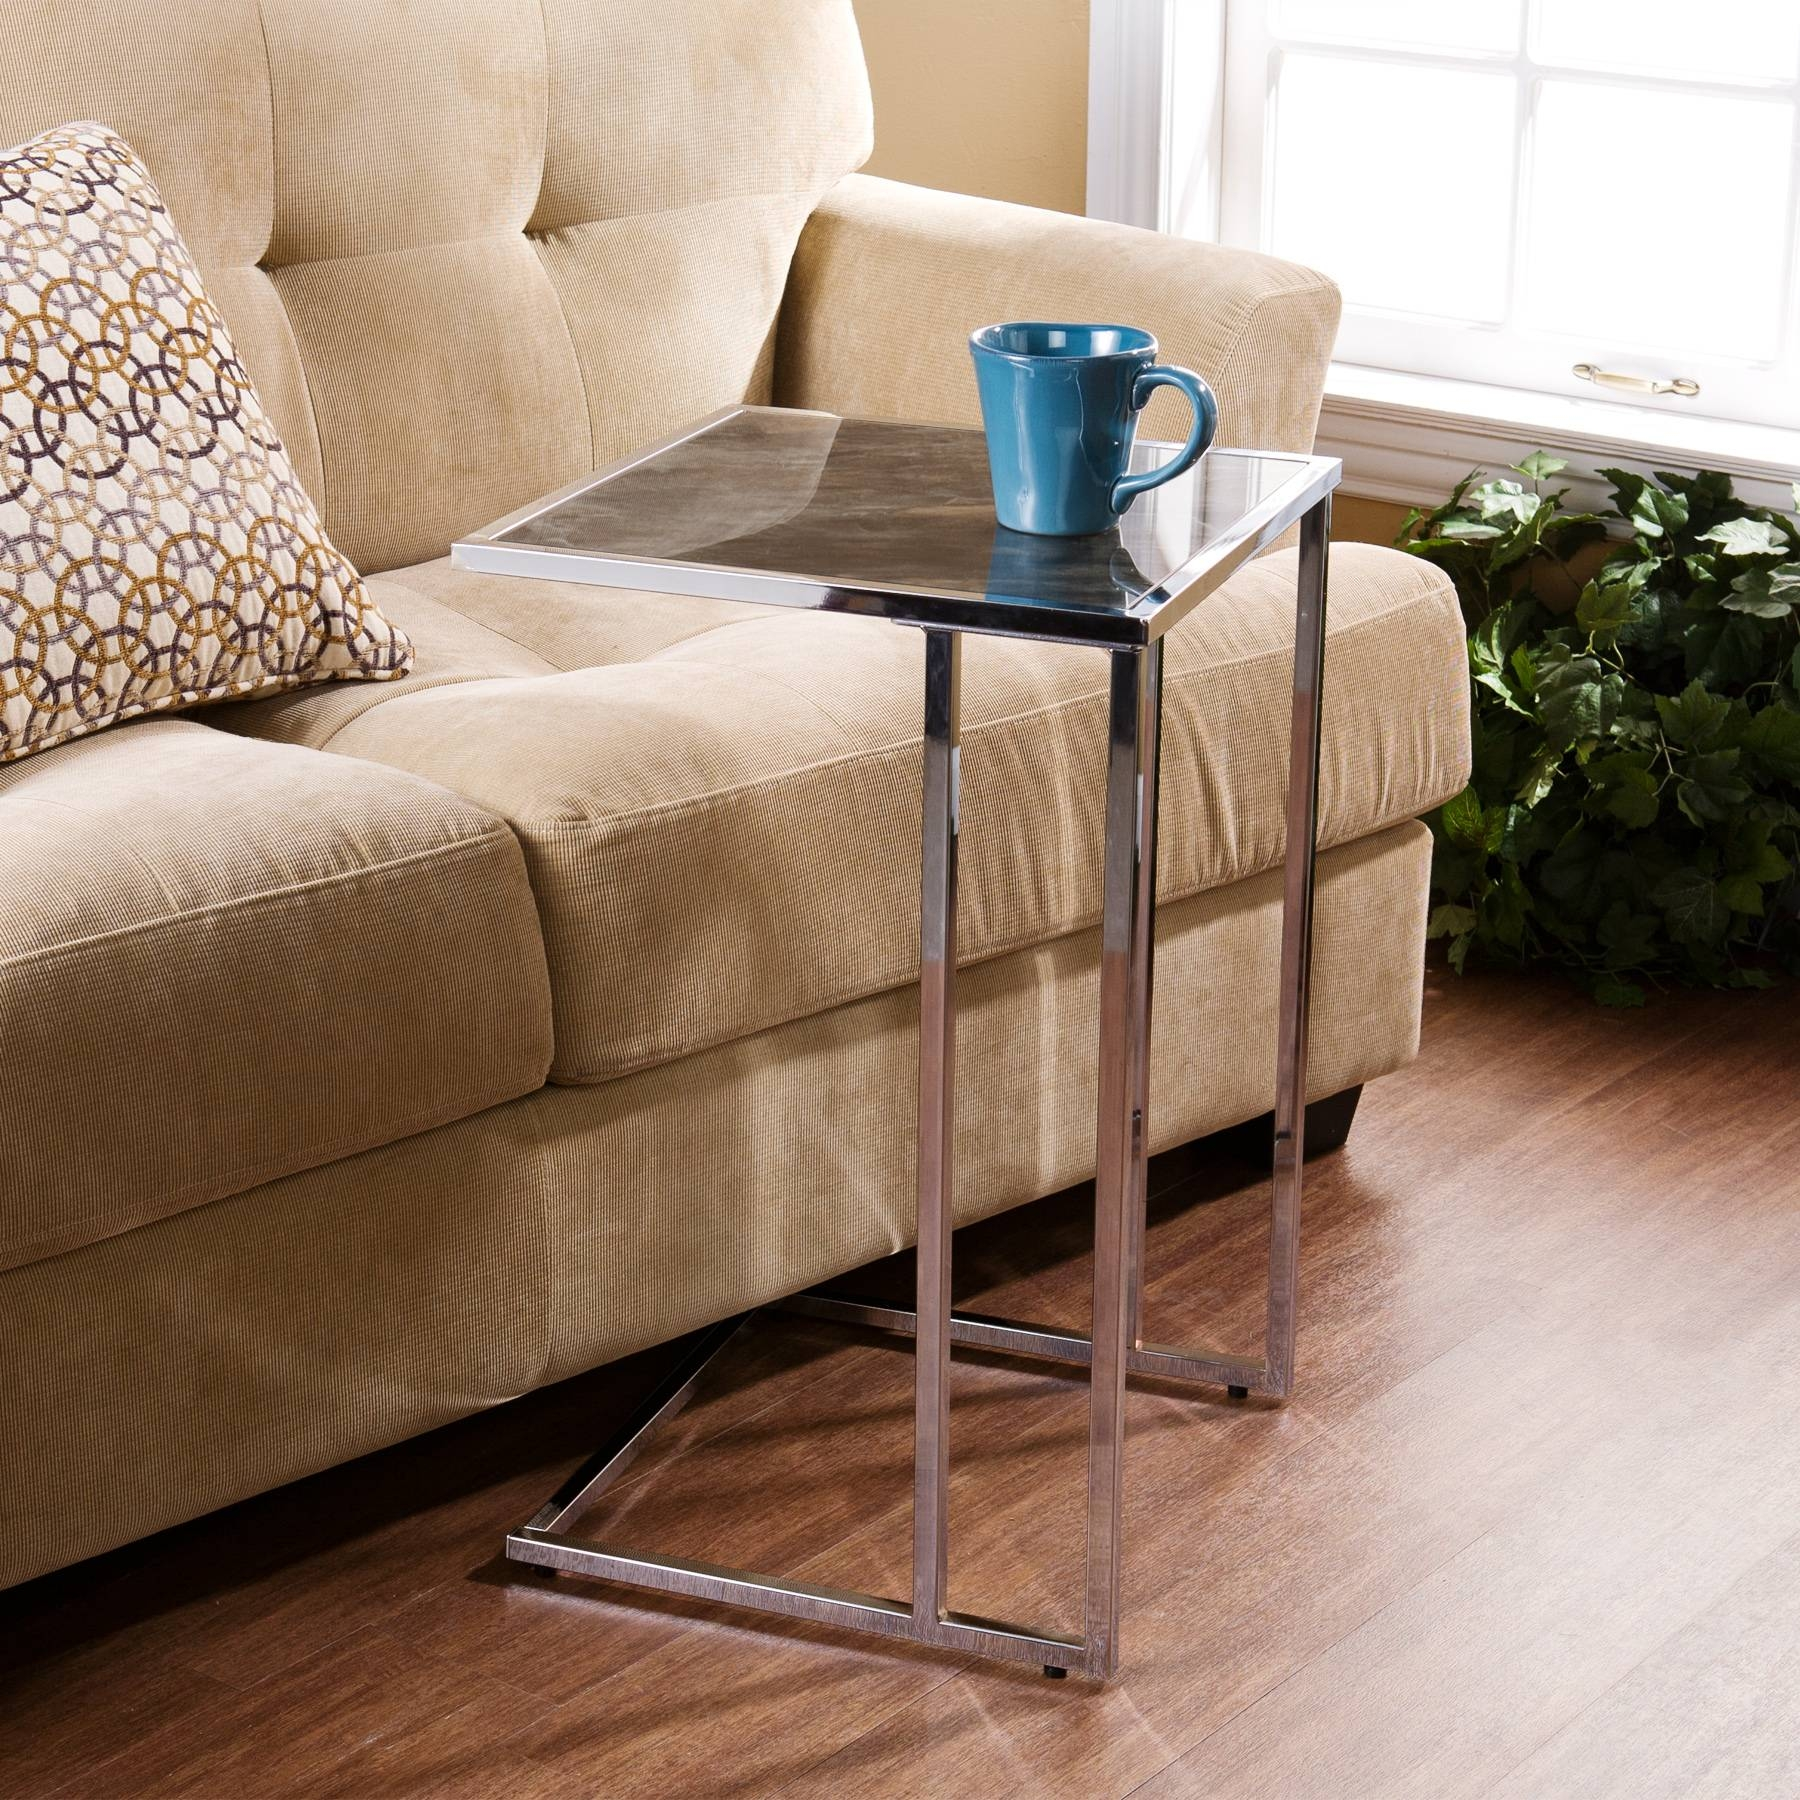 Attractive Snack Table With Slick Square Table Top Combined pertaining to Under Sofa Tray Tables (Image 1 of 15)